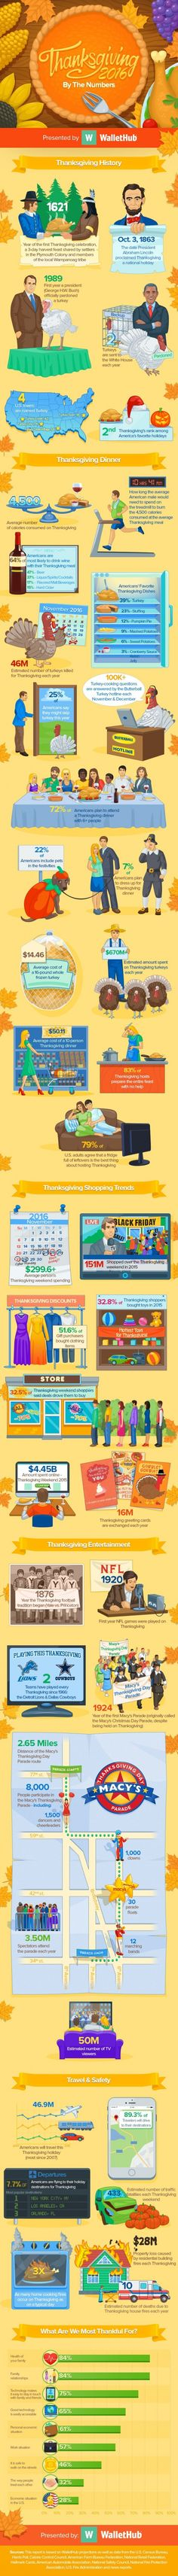 Infographic: Thanksgiving Fun Facts #Infographics